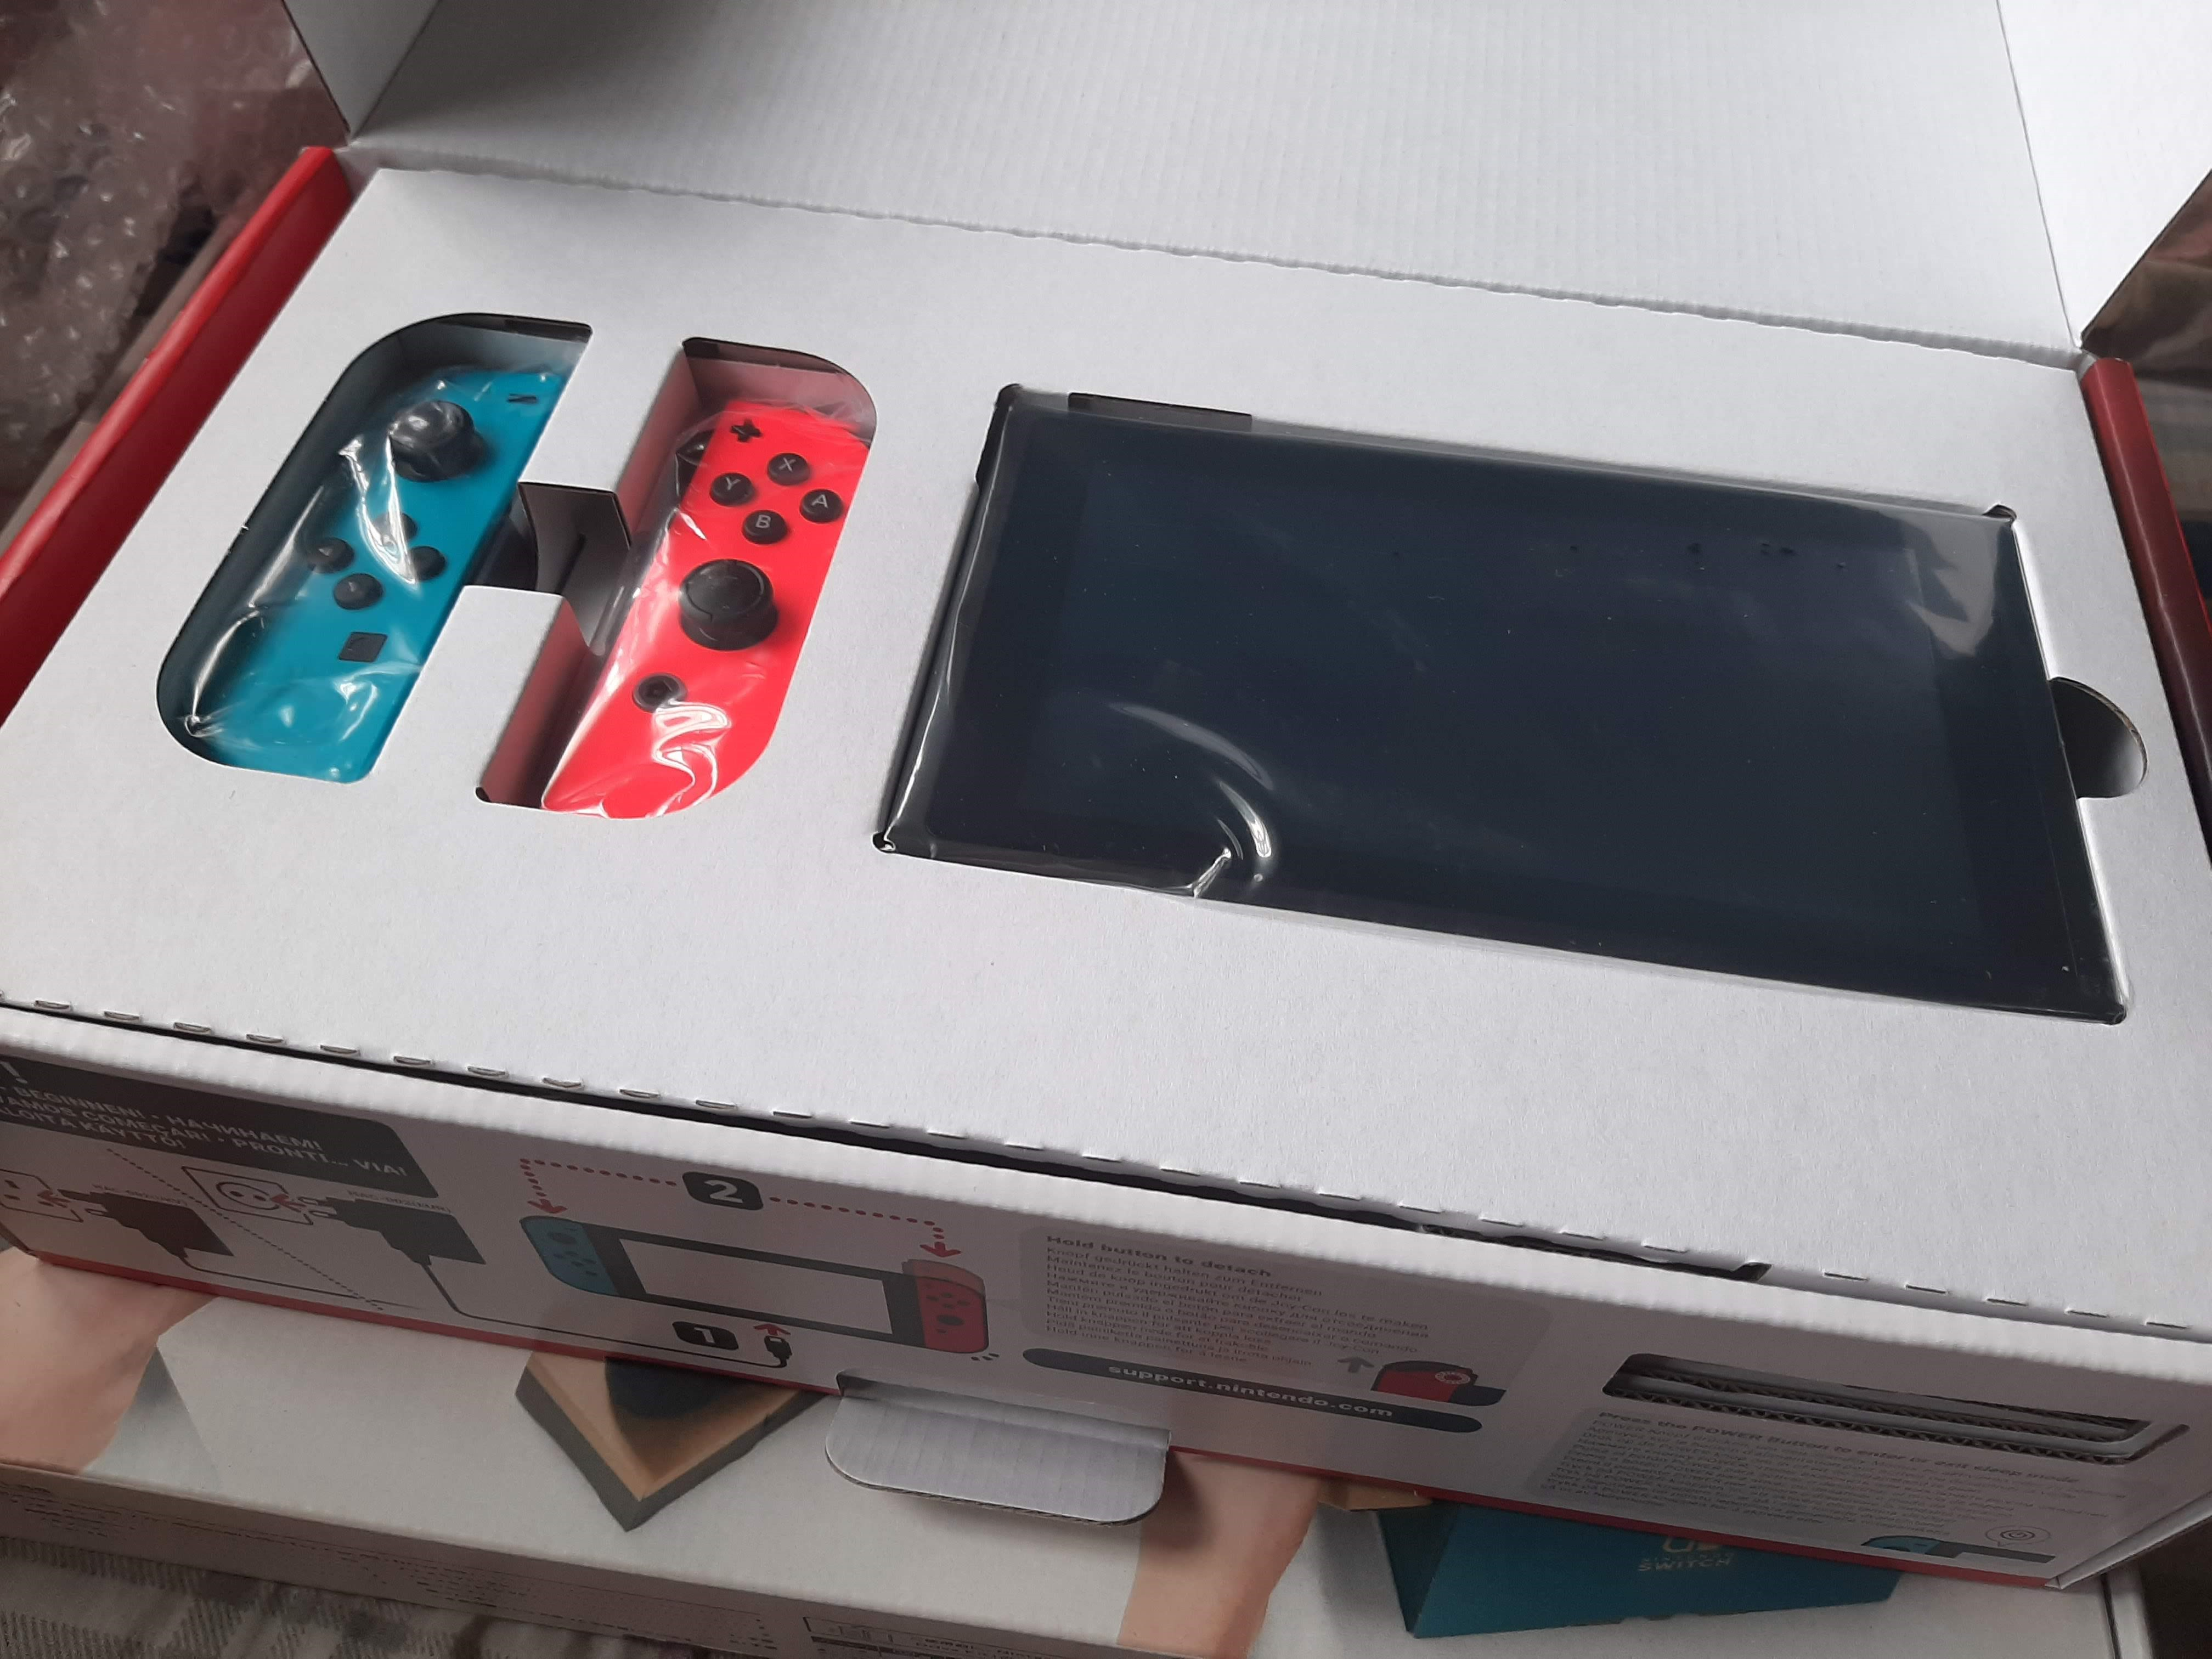 Yesterday's (sort-of) impulse buy came in today, delivery was quick. Friend code: SW-4785-4894-3488 Also, selling: Labo Toycon03 Drive Kit and Disney Tsum Tsum LOL